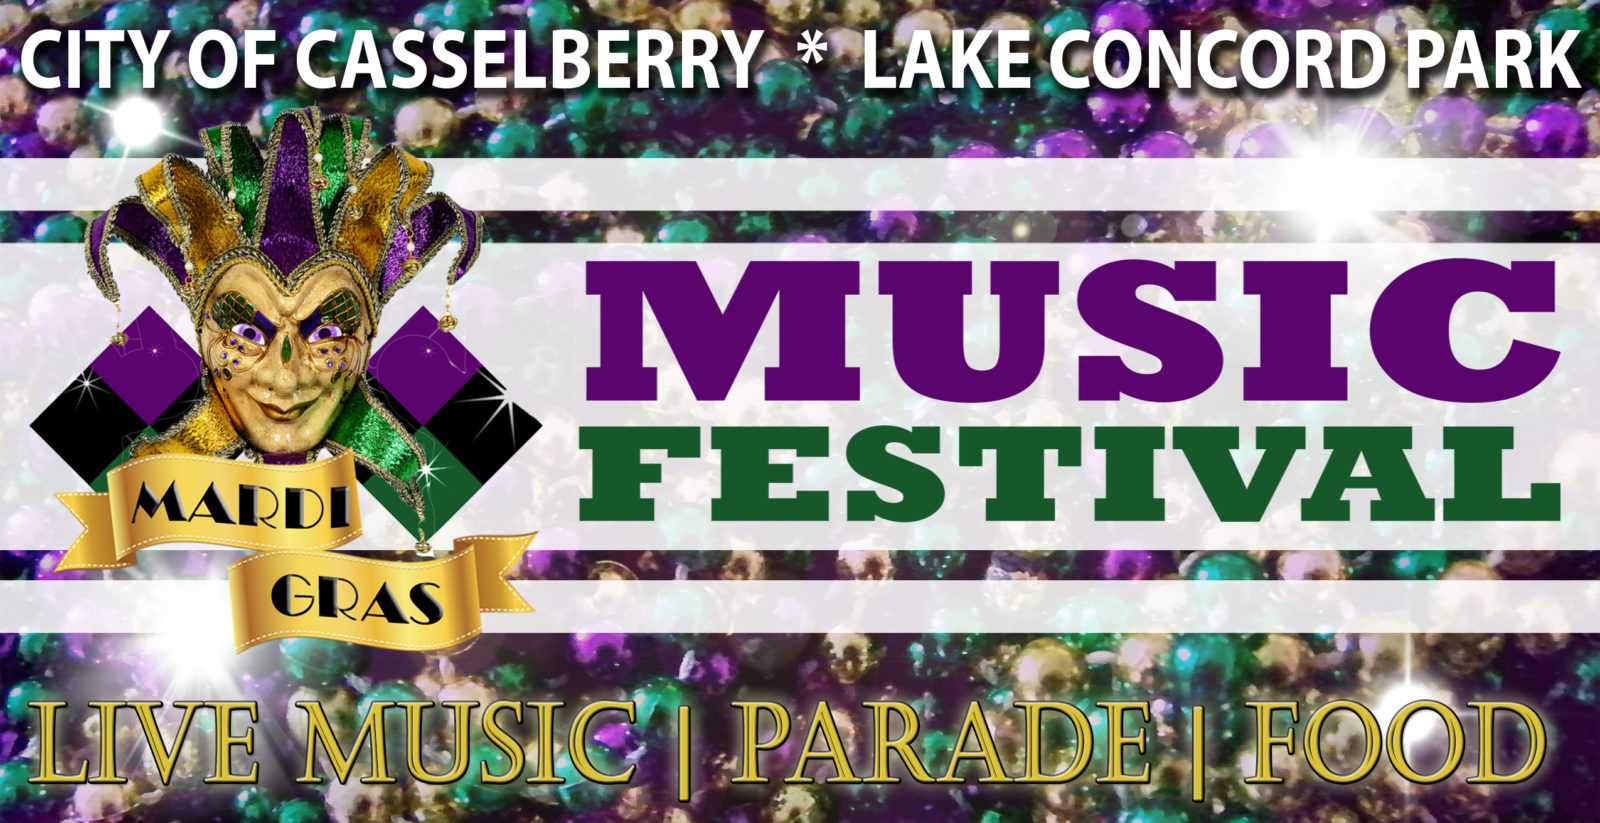 On the Go in Orlando - feb 21 2020 - Casselberry Mardi Gras Music Festival